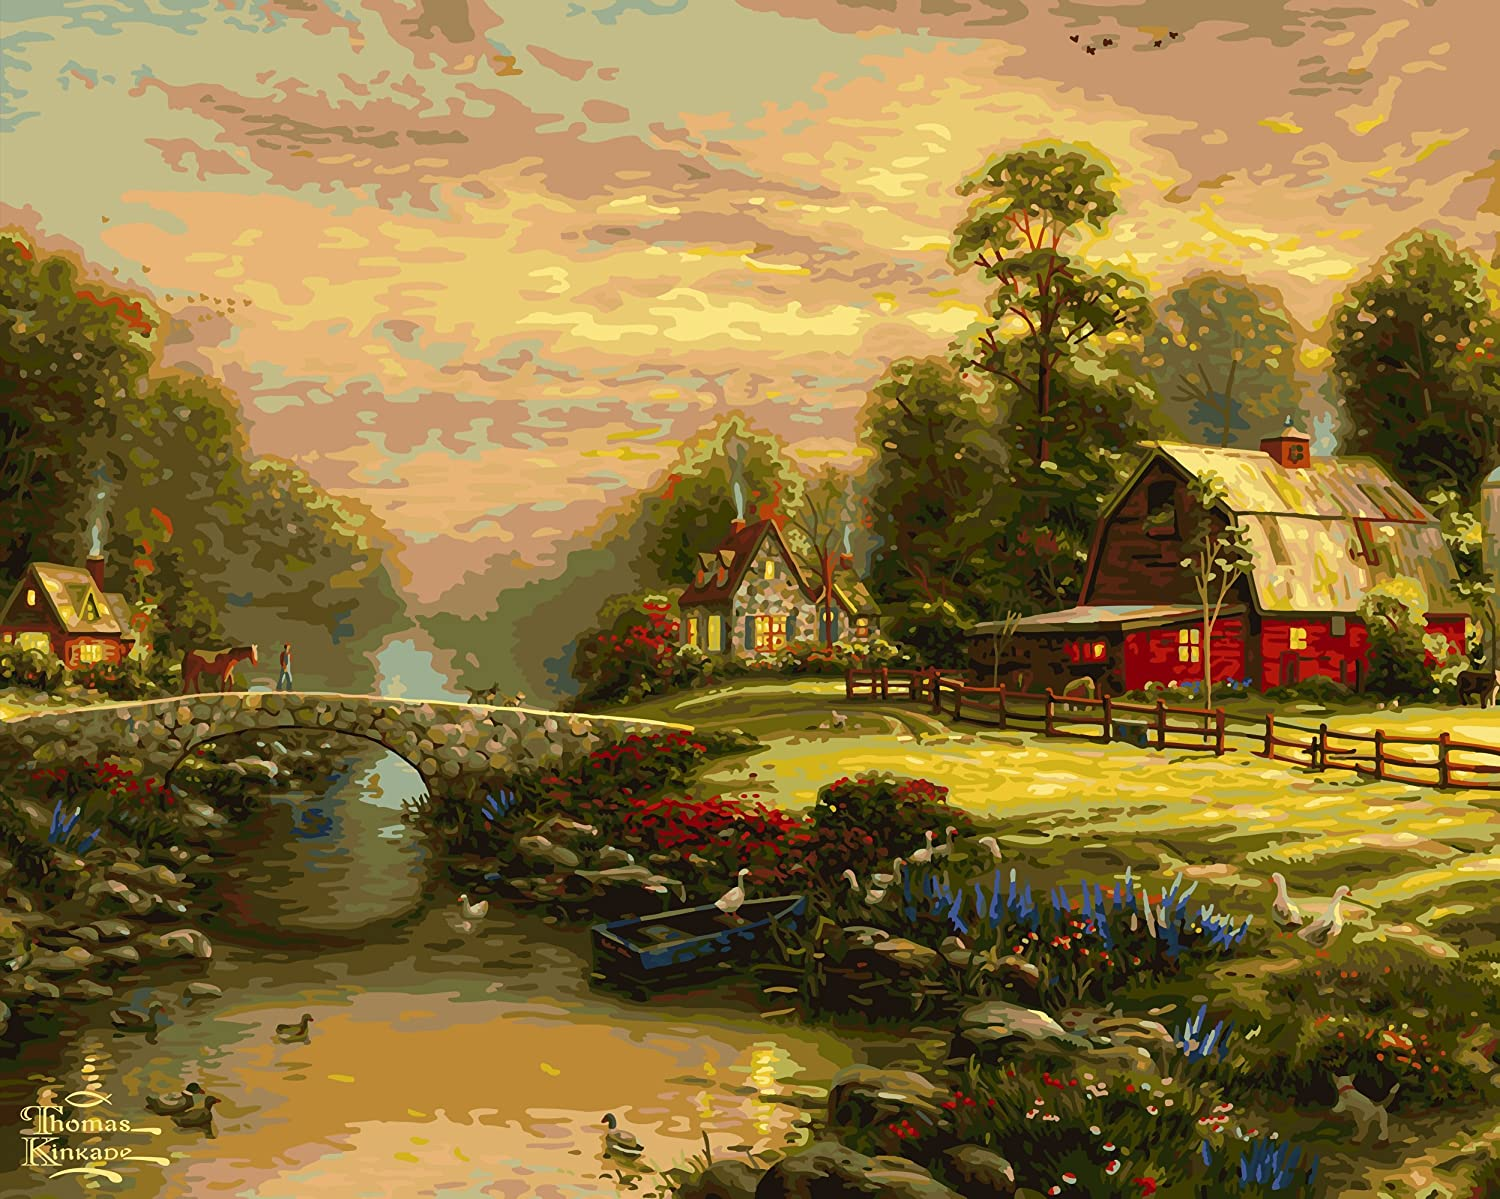 Plaid Thomas Kinkade Series Paint by Number Kit, 20-Inch by 16-Inch, Sunset at Riverbend Farm